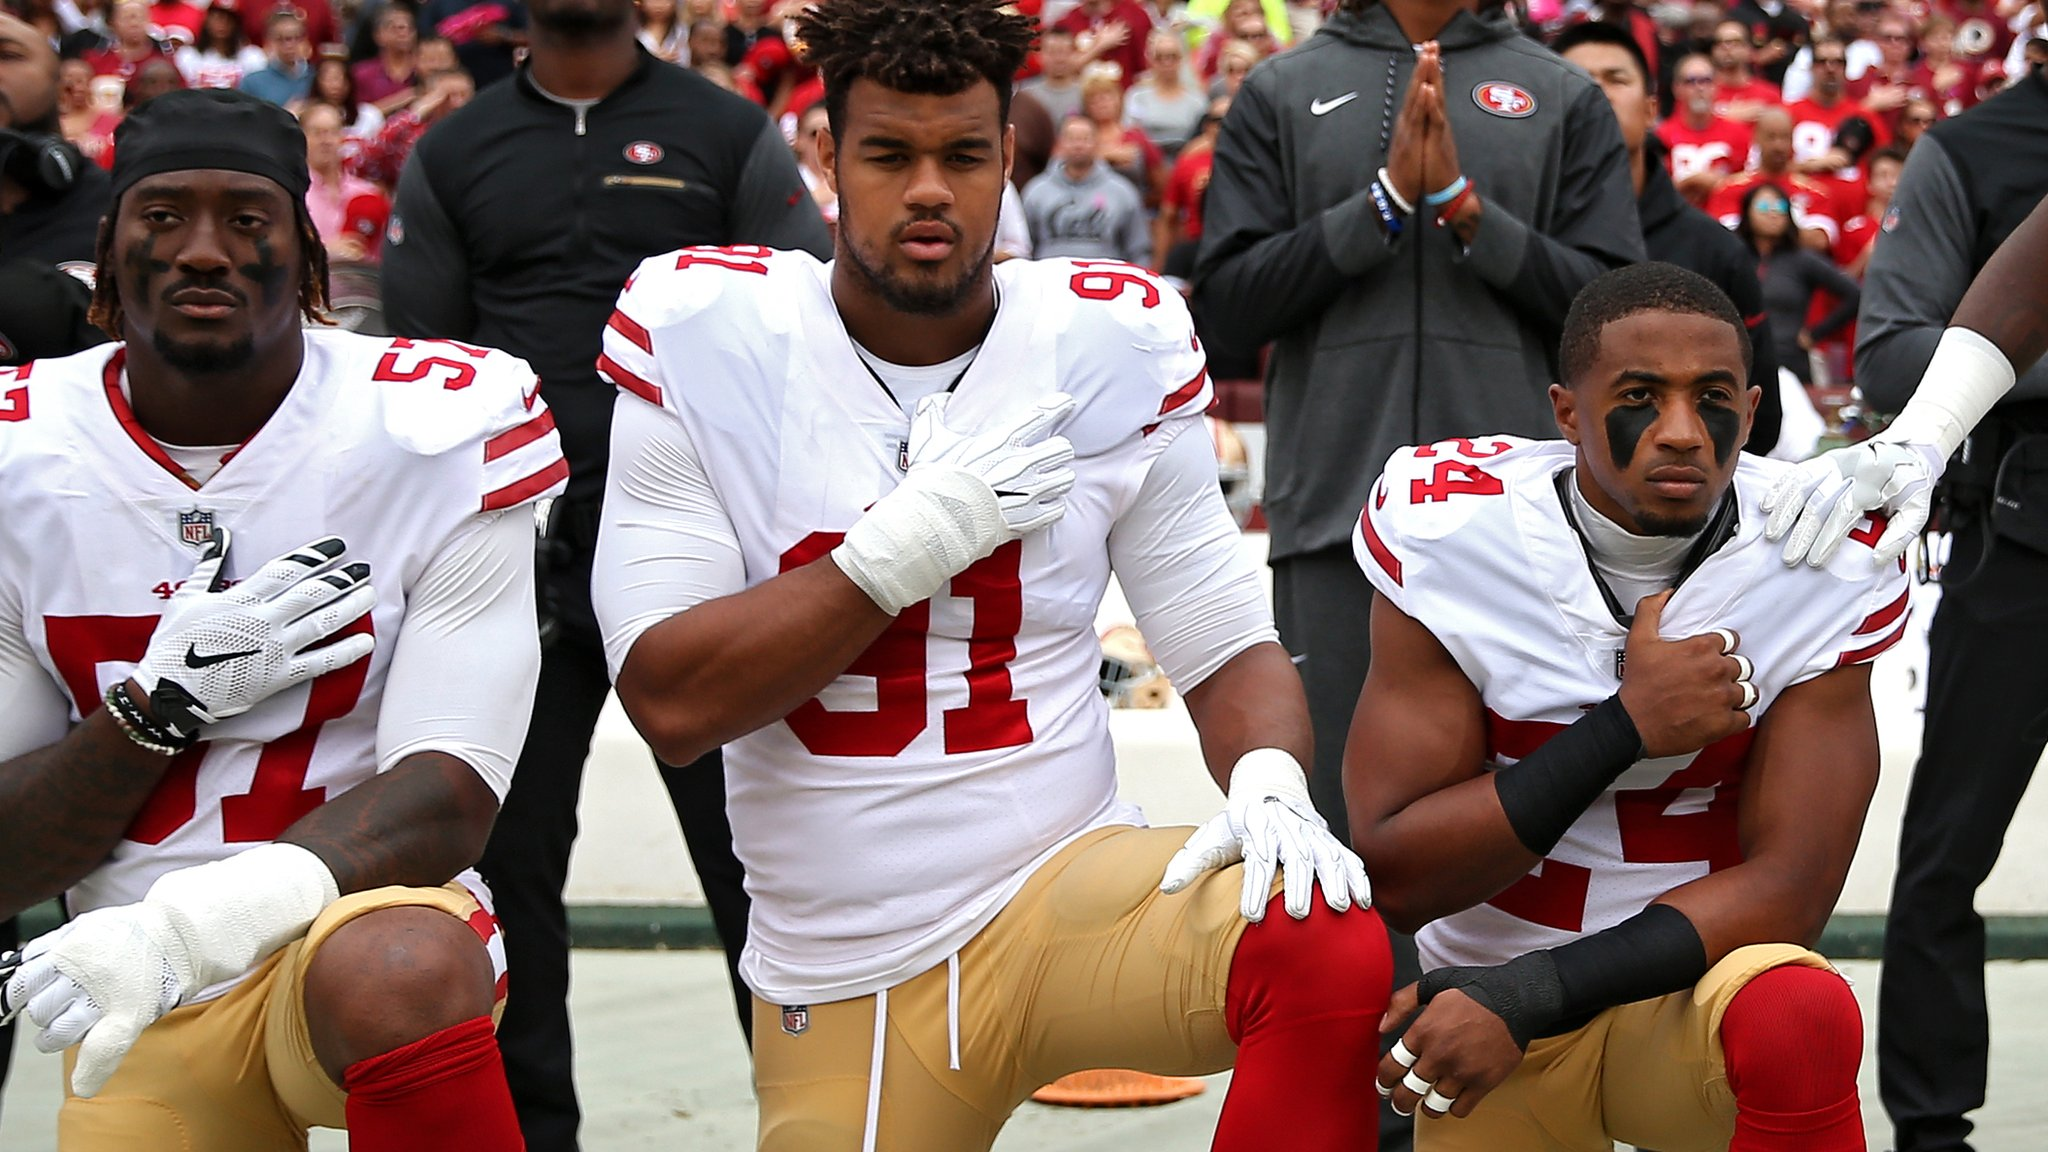 NFL says it will seek compromise over 'taking the knee' anthem protests